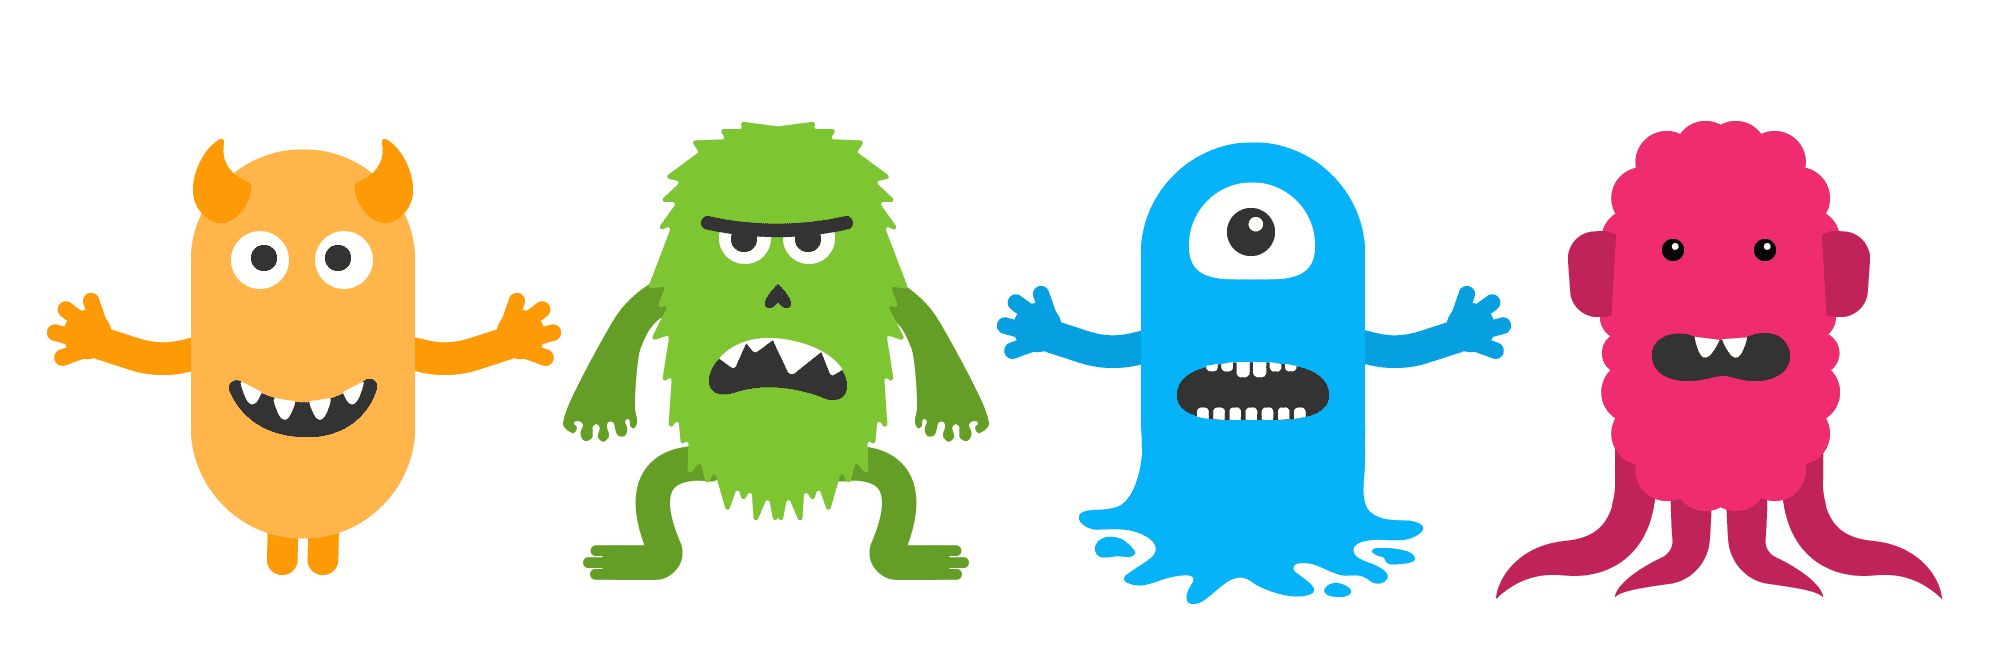 Emotions clipart kind emotion. Meet your emotional monsters